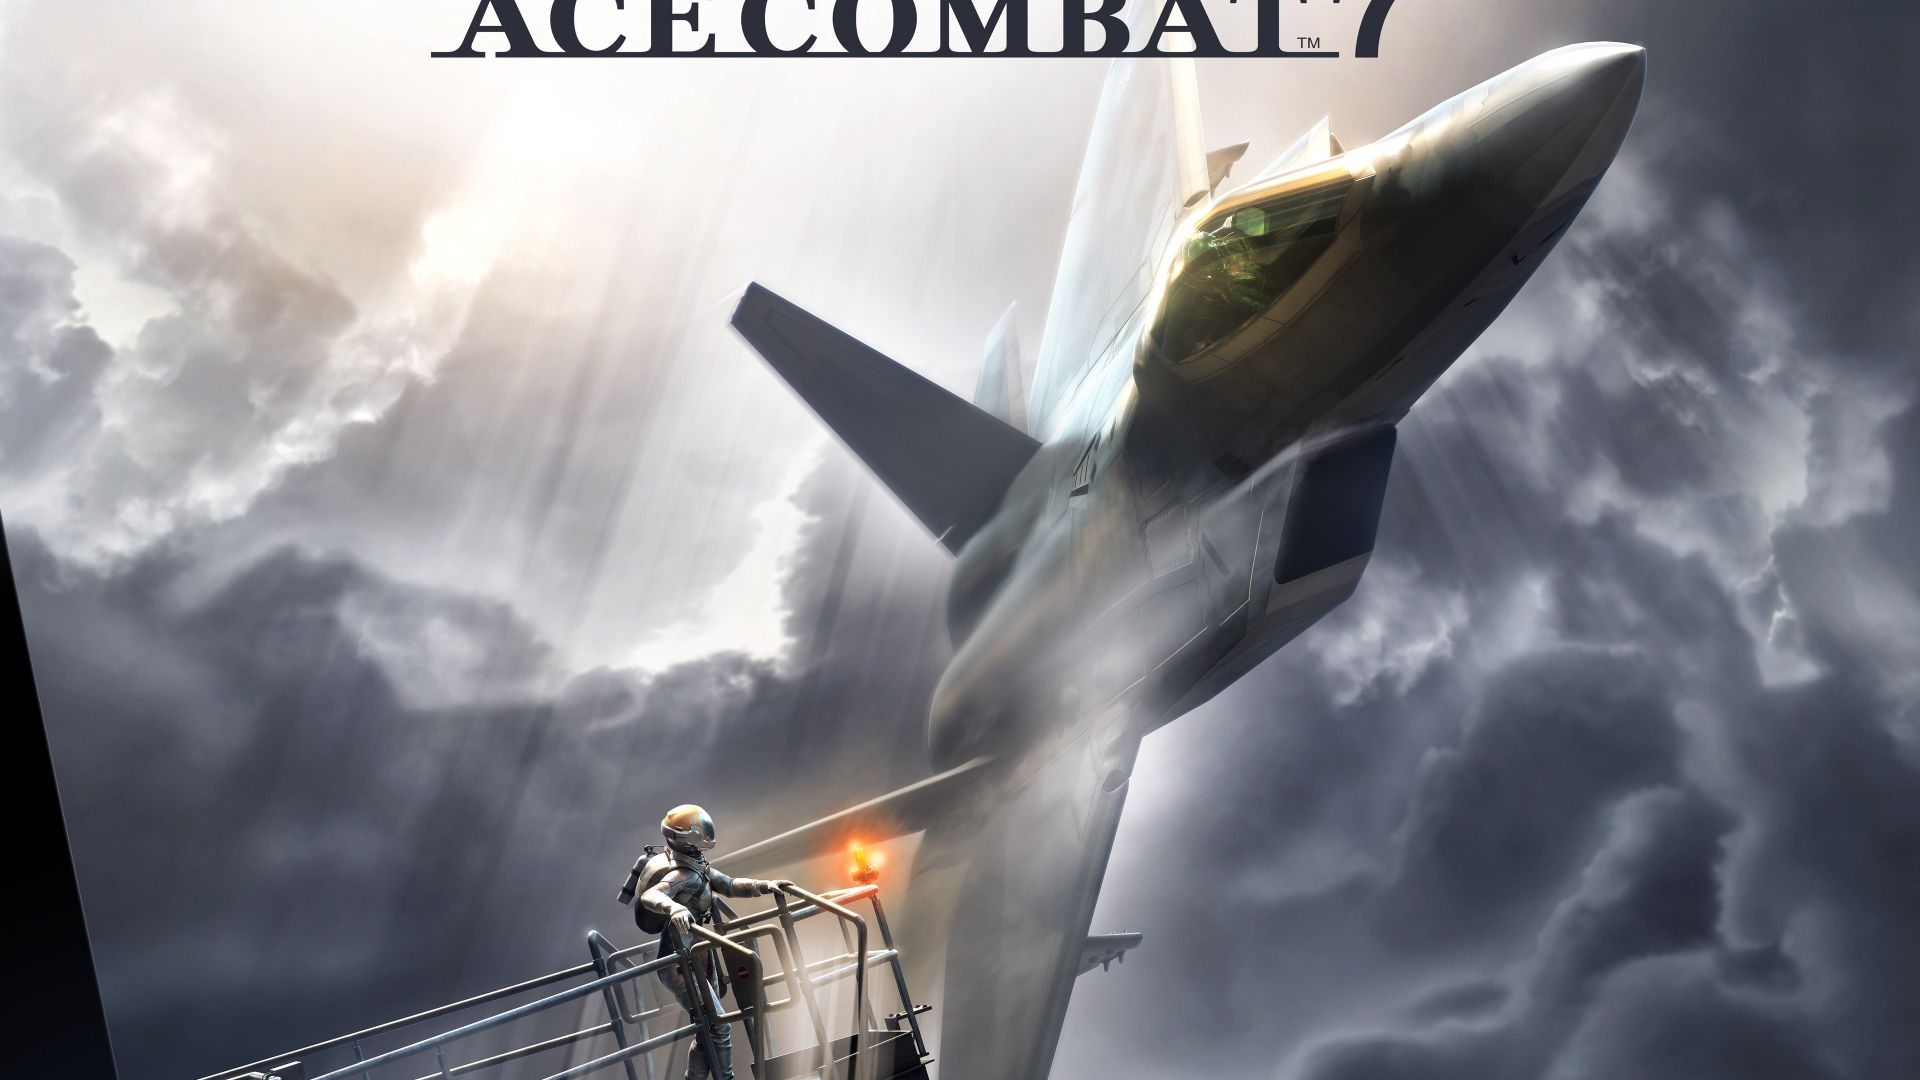 Wallpaper Ace Combat 7: Skies Unknow, fighter plane, aircraft, 5k